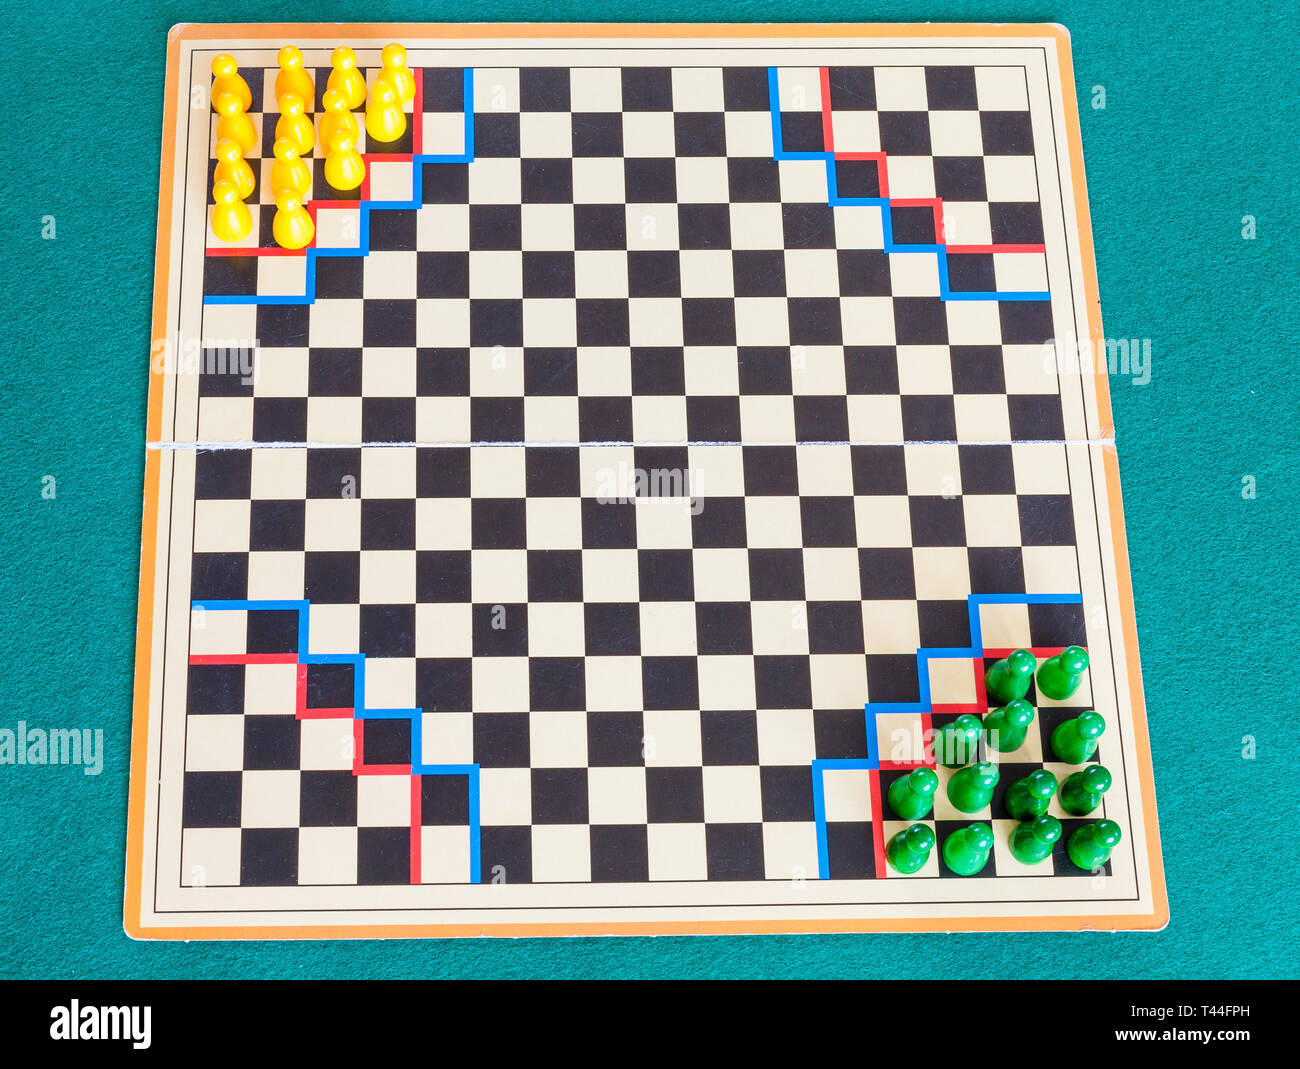 Brettspiel Halma Board Game Halma Stockfotos Board Game Halma Bilder Alamy